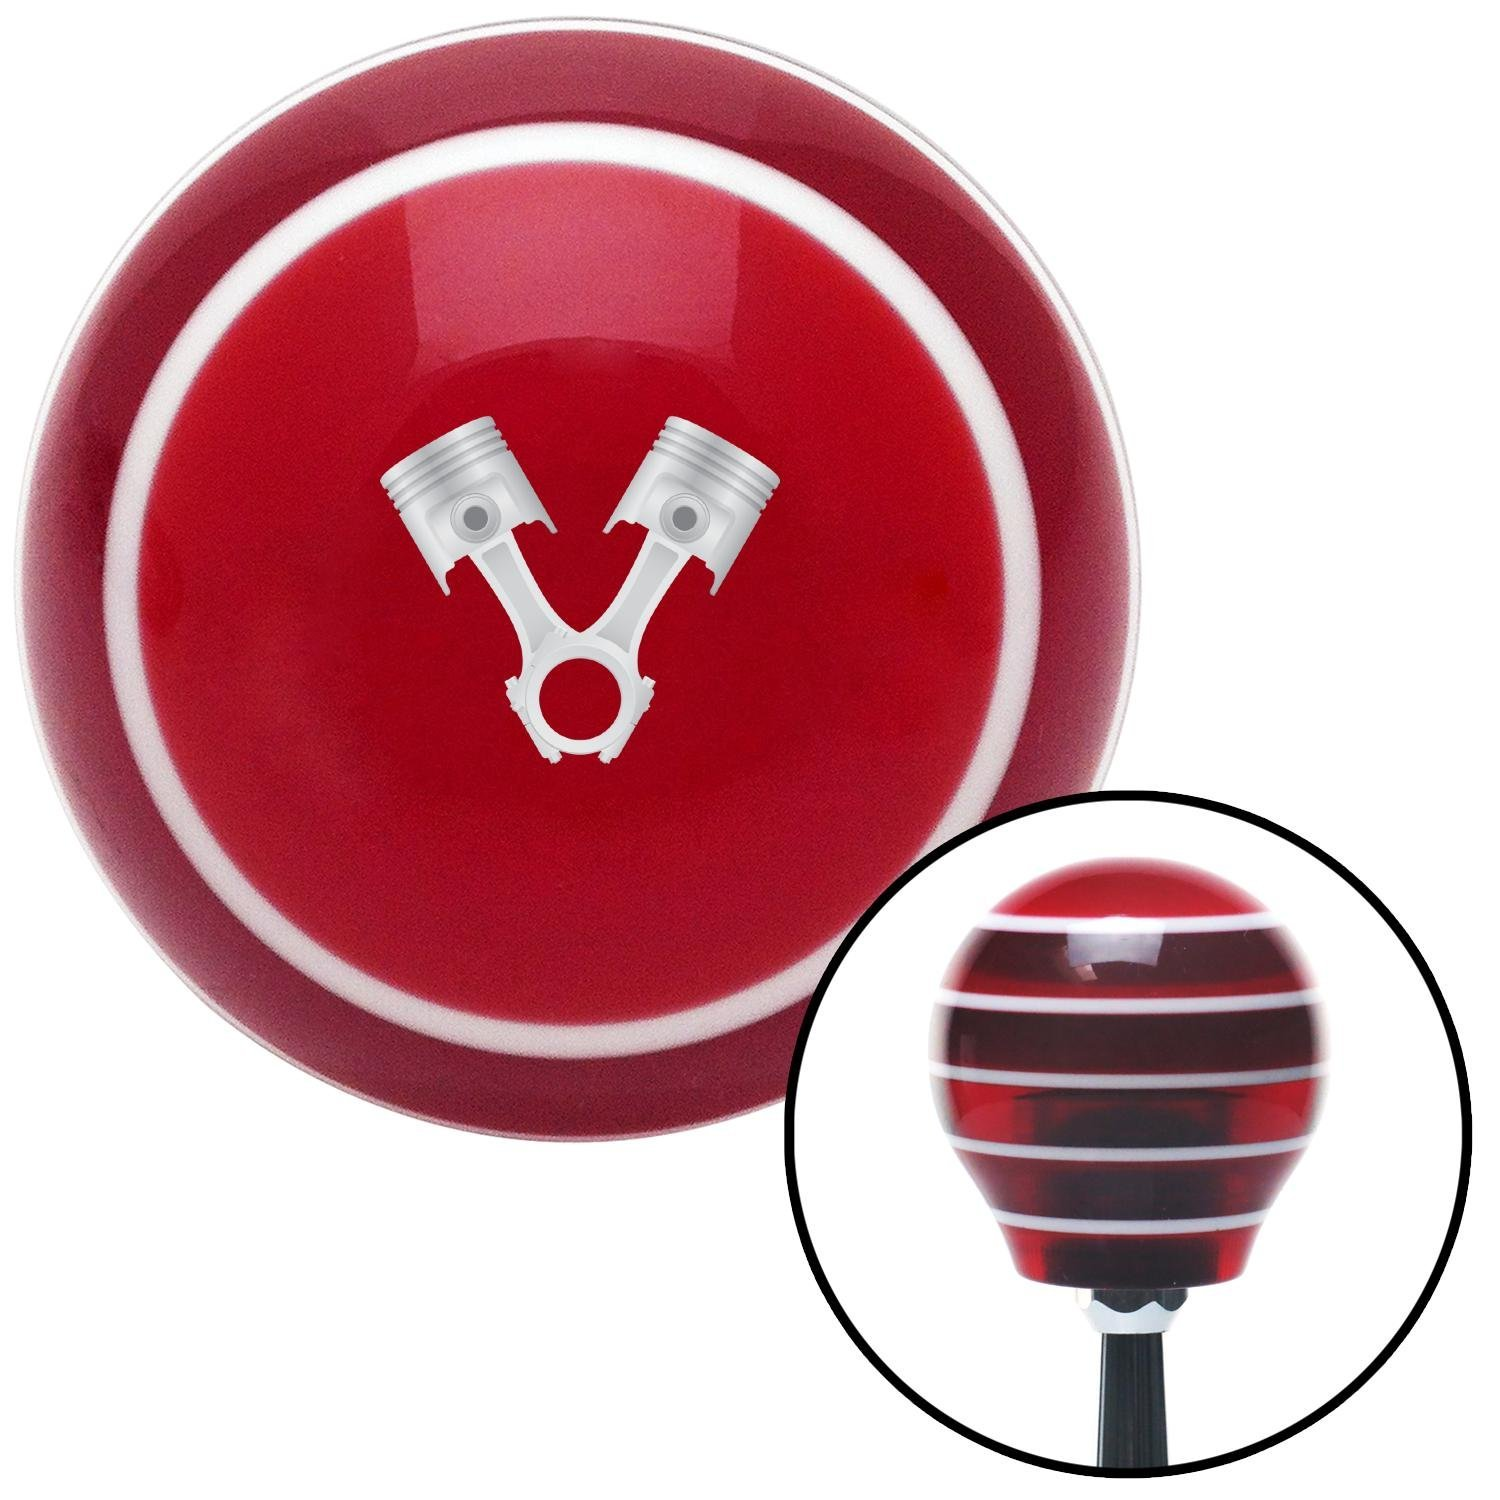 American Shifter 274076 Shift Knob Pistons Metal Red Stripe with M16 x 1.5 Insert